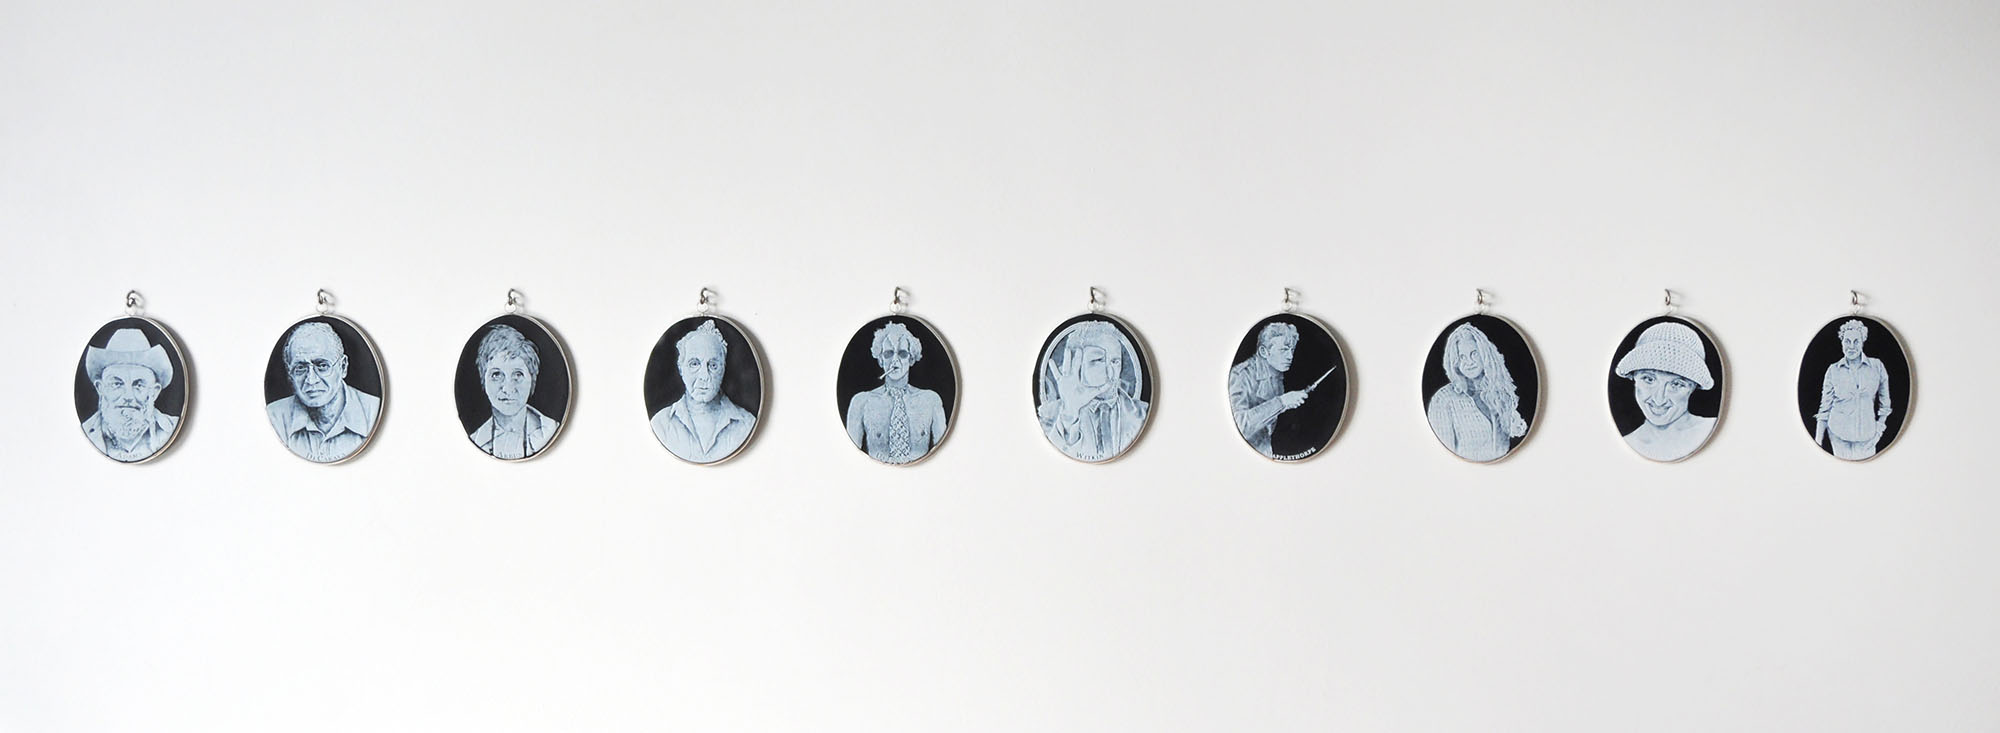 Charlotte Potter - Cameographic (installation view of 10 cameos), 2017, hand engraved glass, silver, tin, stainless steel, 5 by 4 inches each cameo, dimensions variable